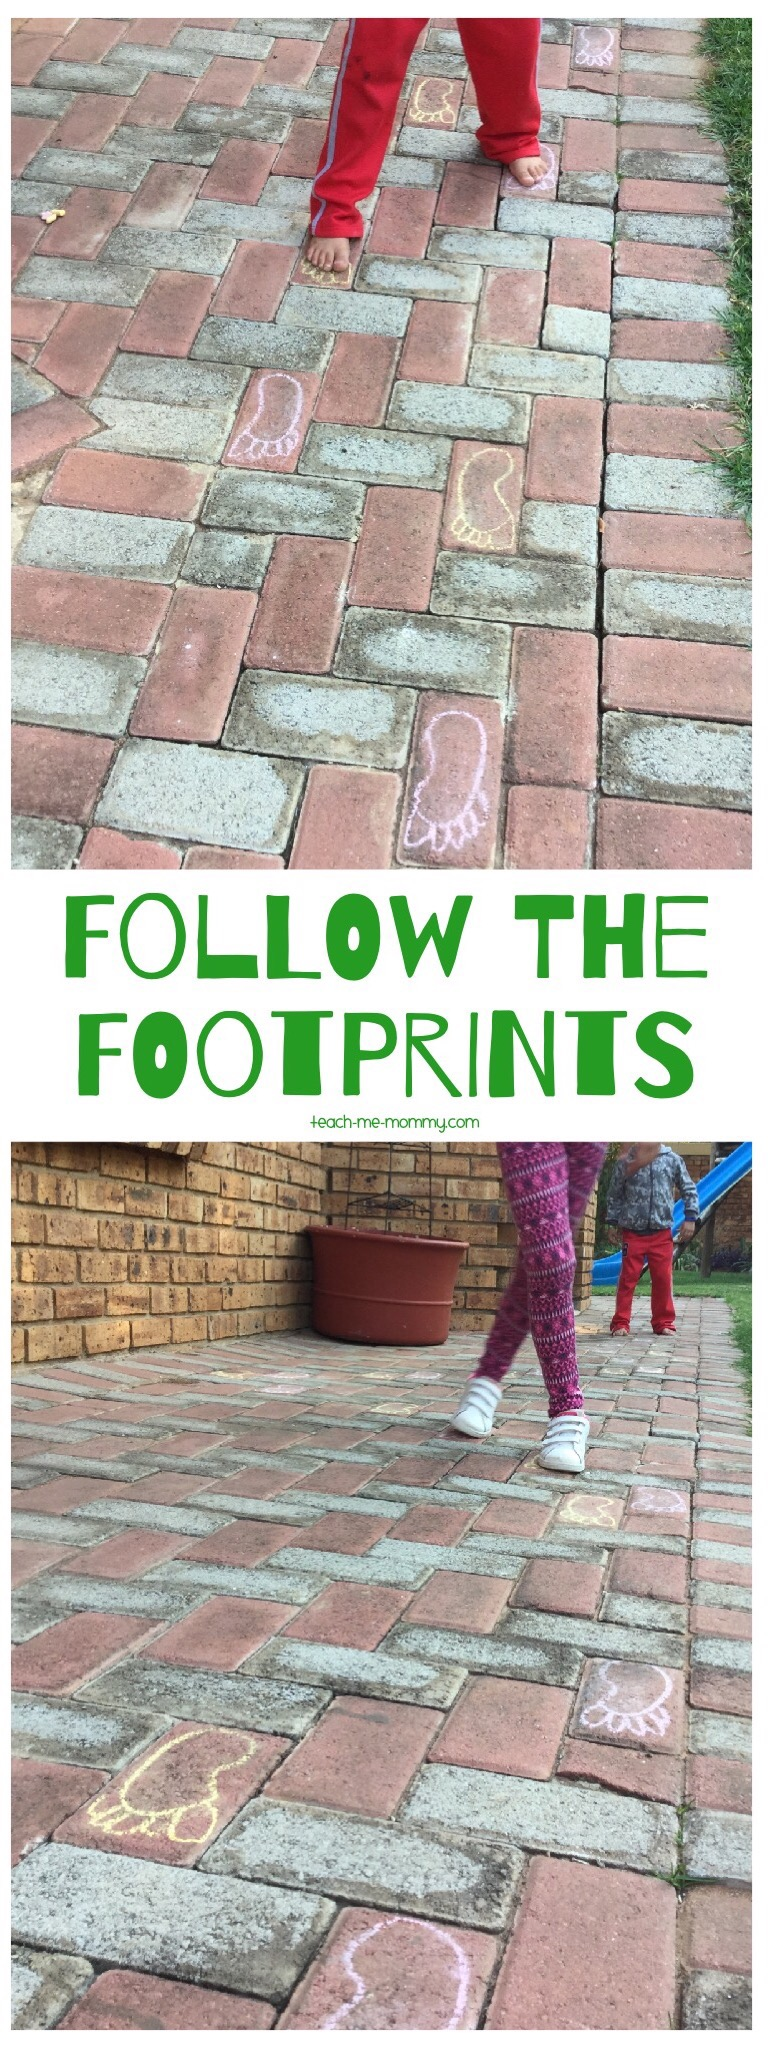 Follow the footprints